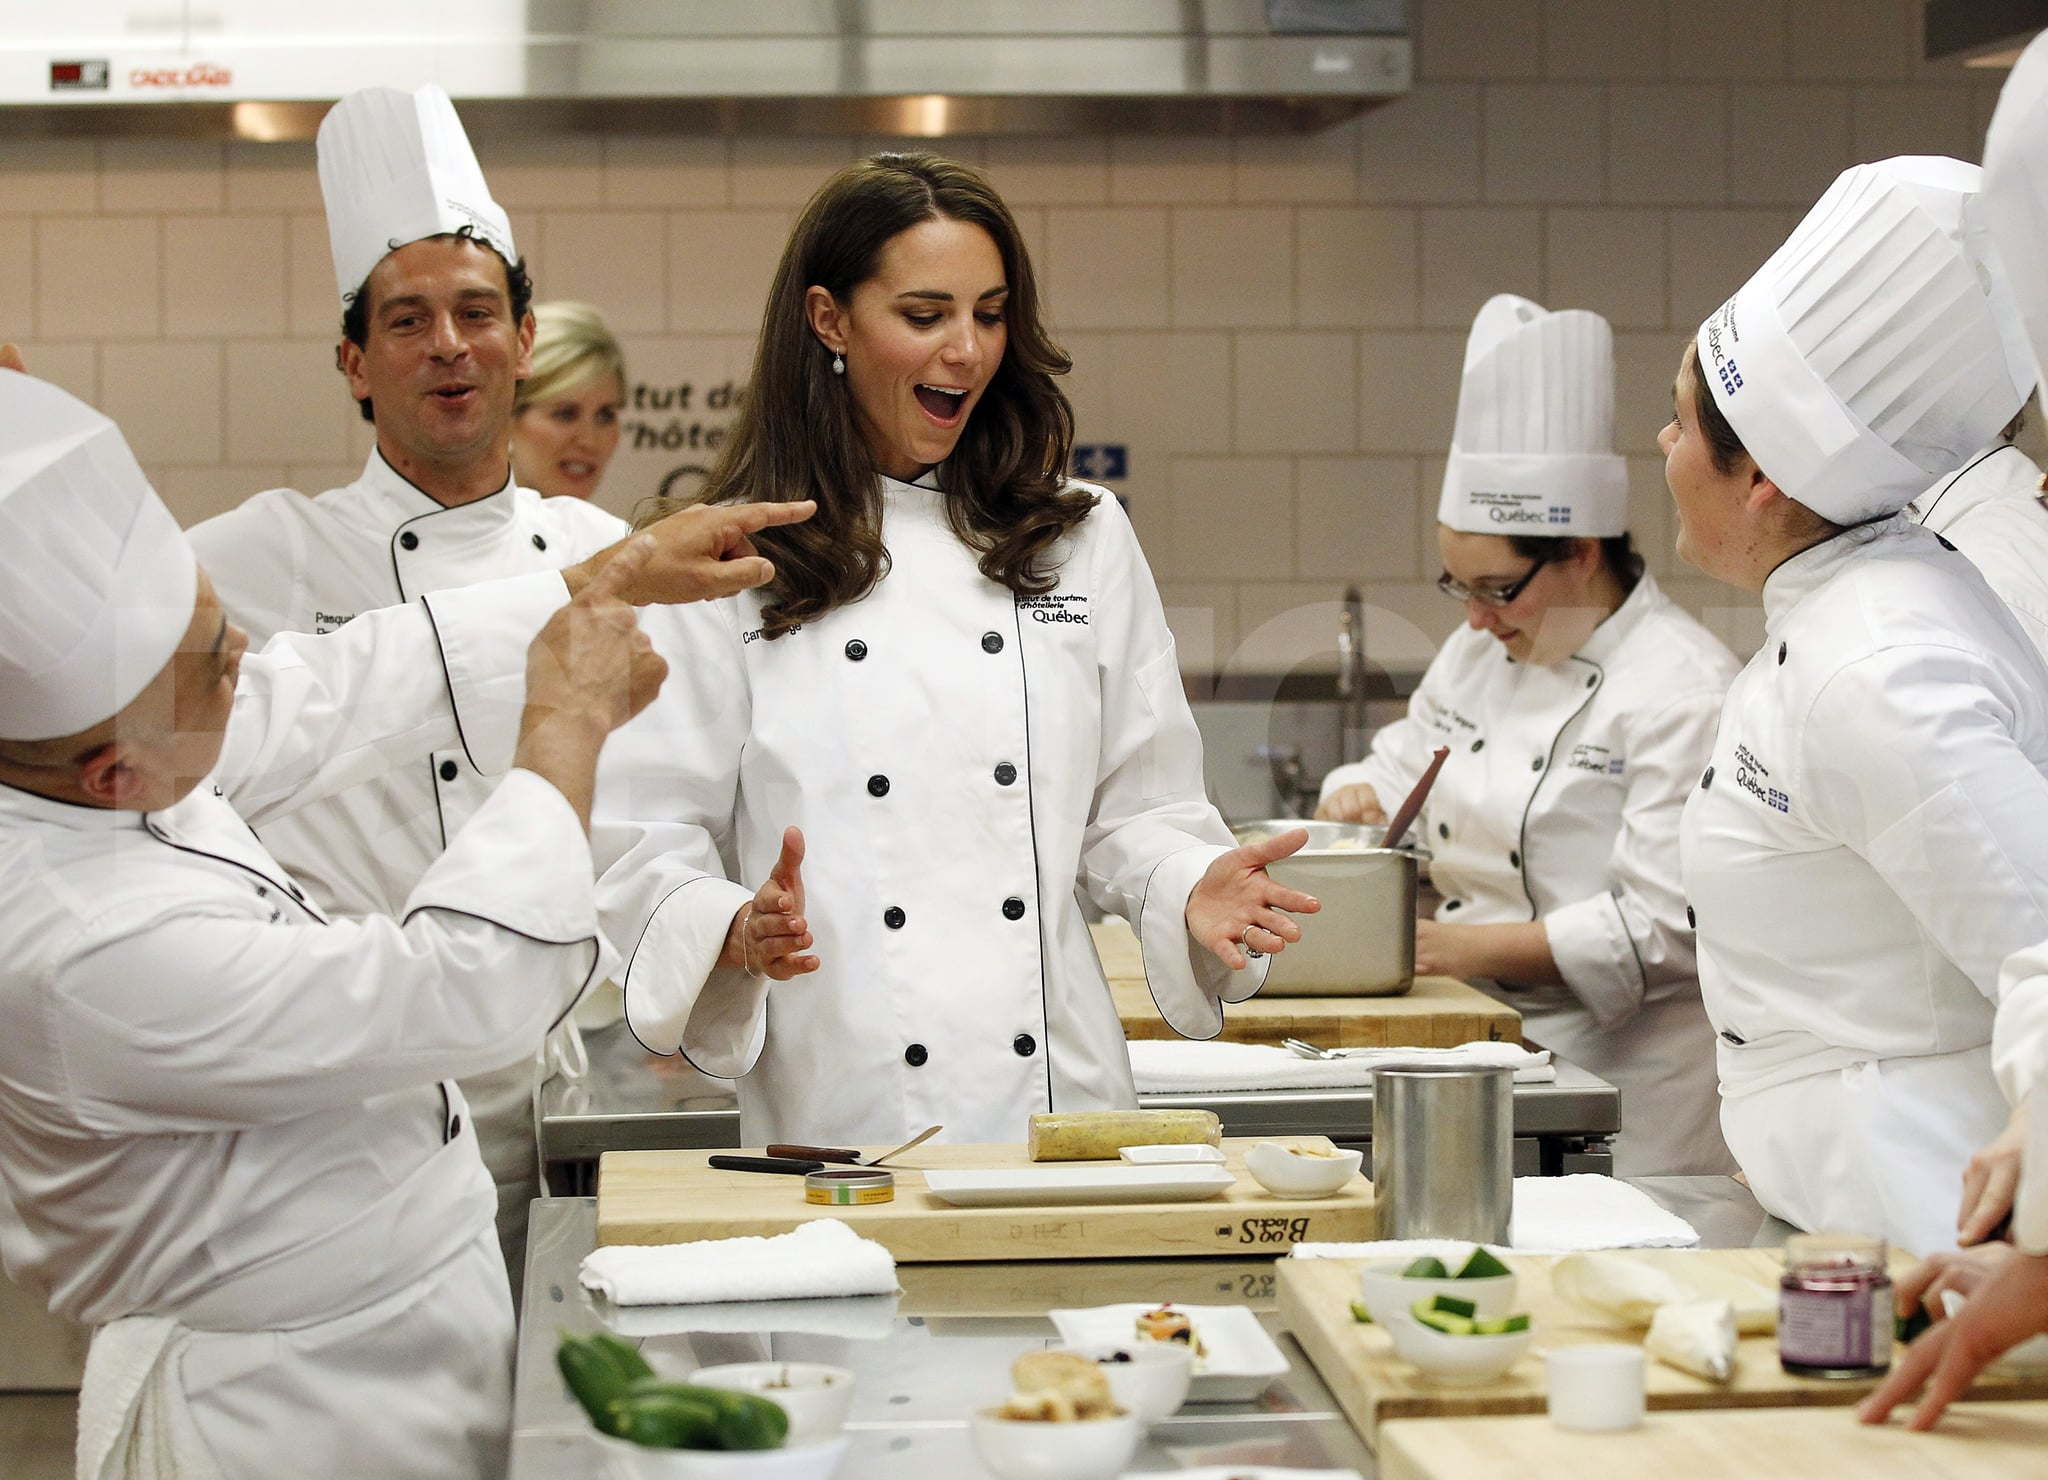 Kate Middleton Hung Out In The Kitchen With Chefs At The